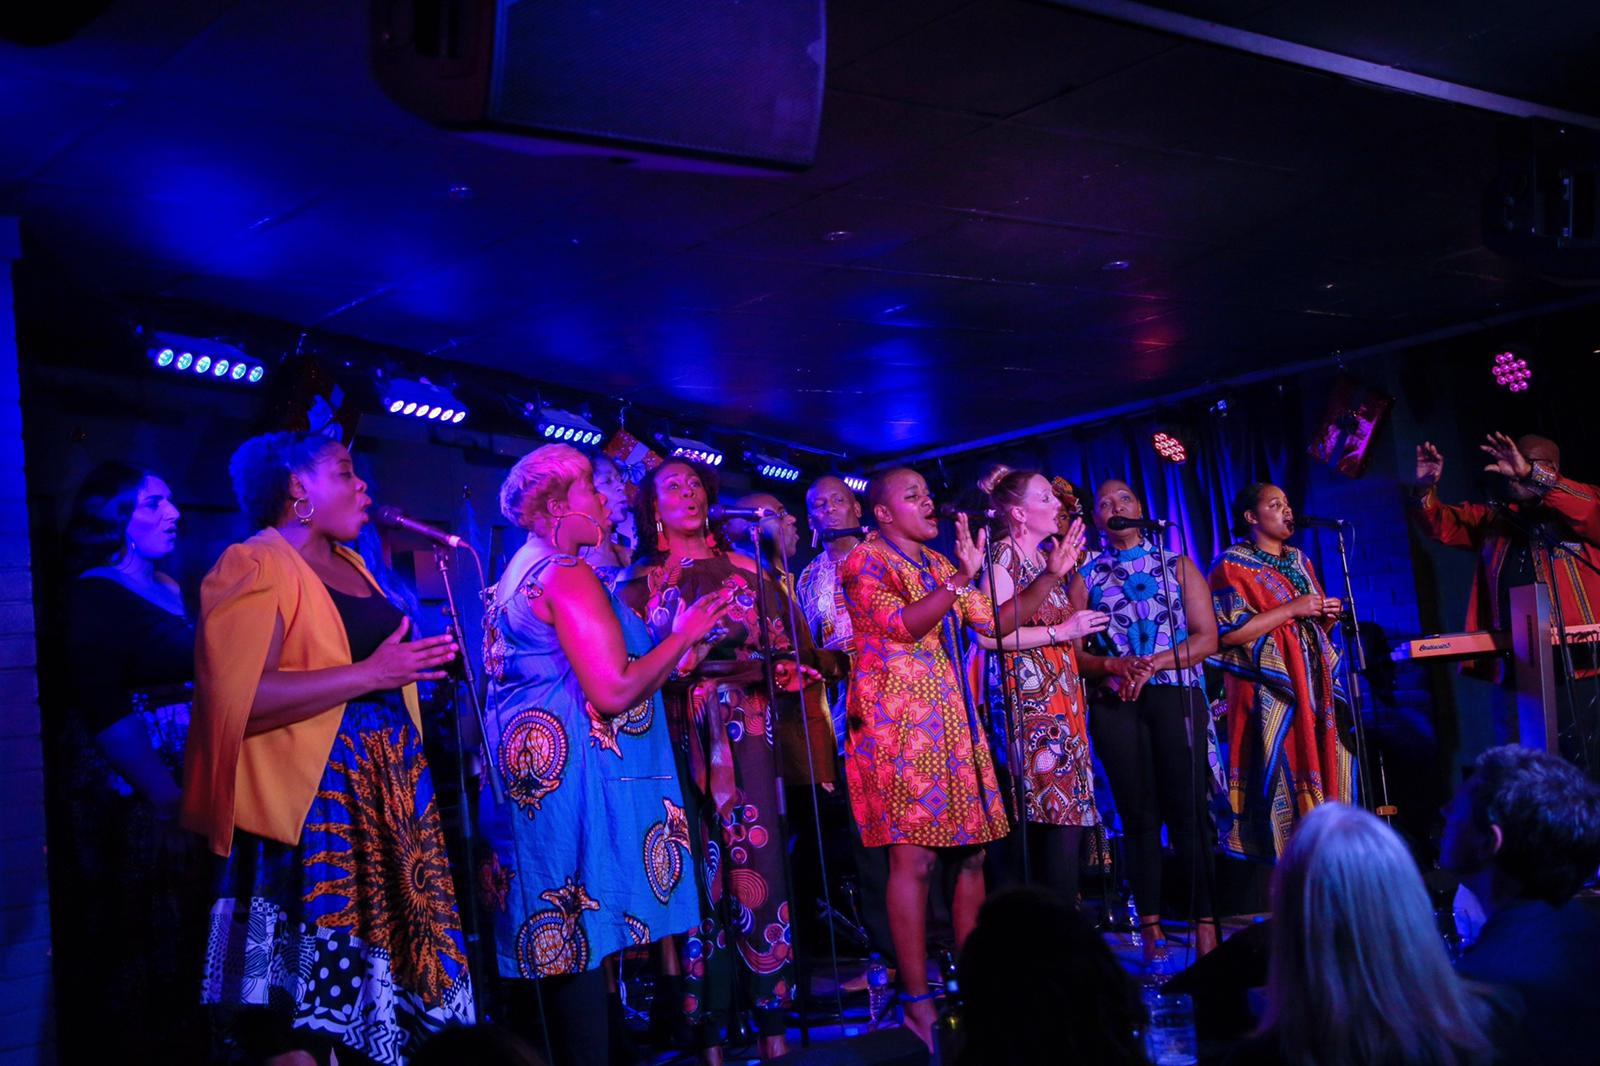 JOHN FISHER & IDMC GOSPEL SOUL CHOIR - GOSPEL / SOULDOOR 7PM / MUSIC 8PM (END 10PM)£18 / £15 (BK)CLICK HERE FOR TICKETS